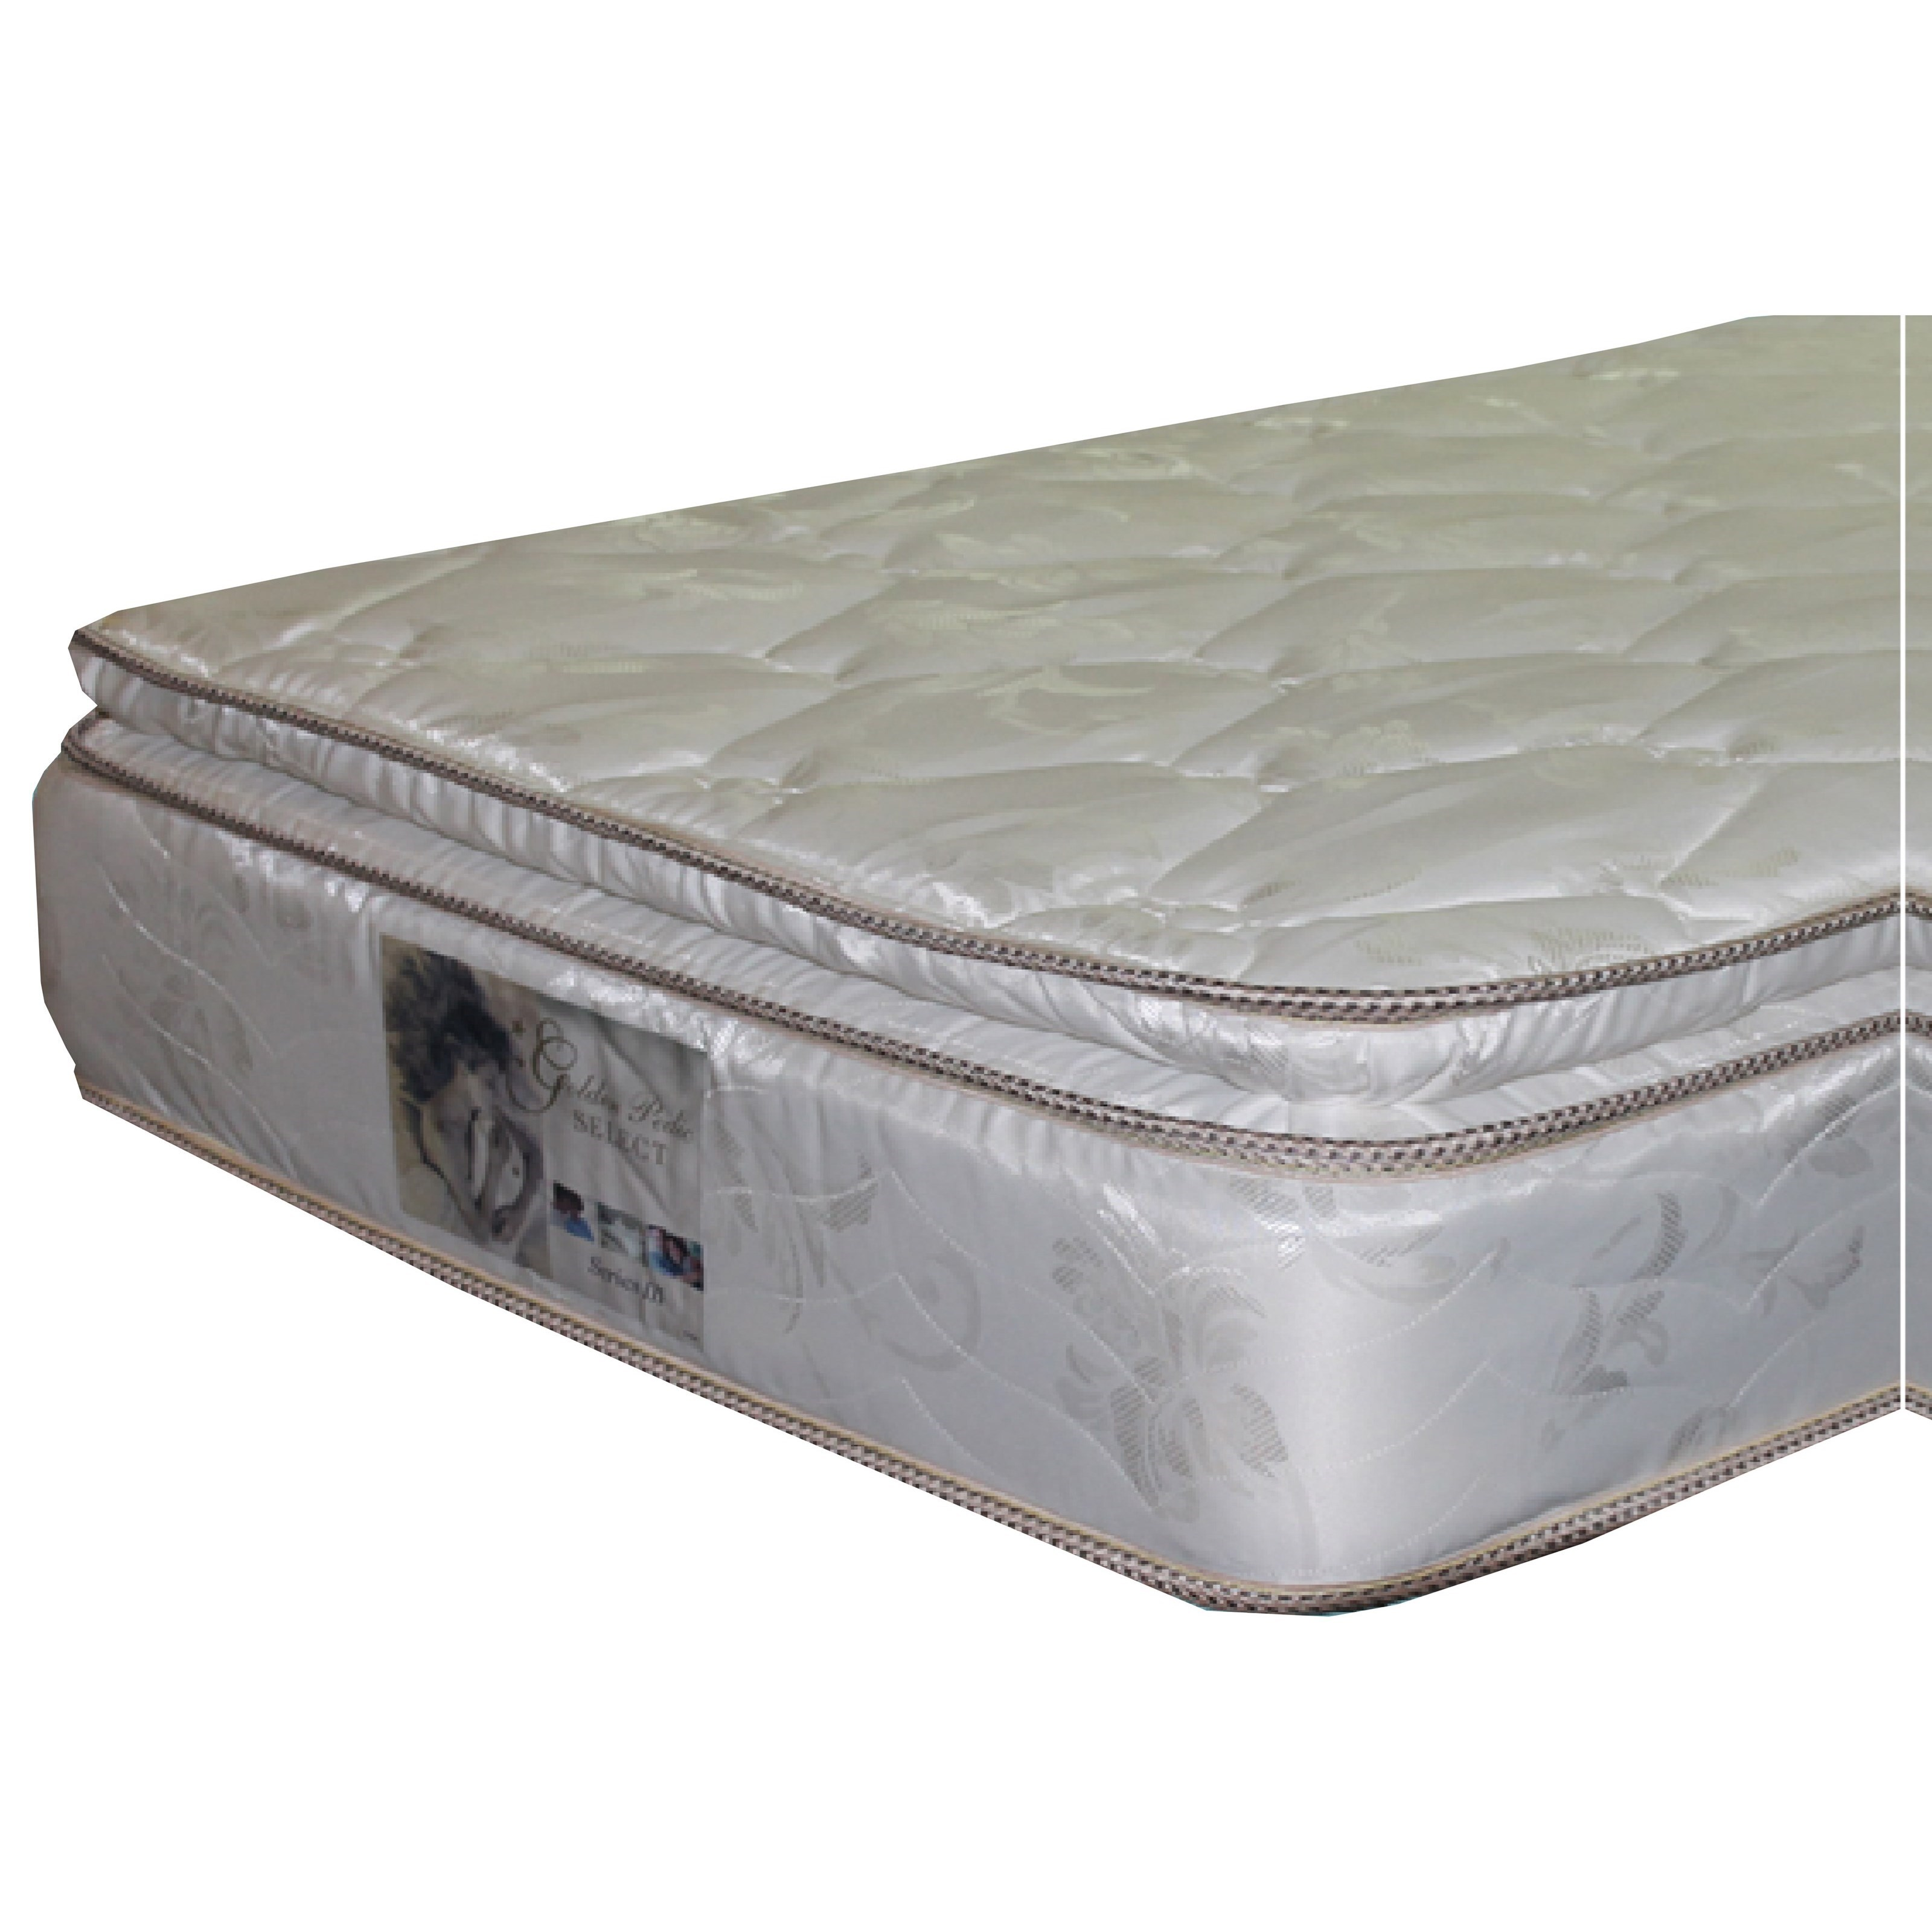 Golden Mattress Company 5-Series III PT Queen Pillow Top Mattress - Item Number: 5-SeriesIIIPT-Q